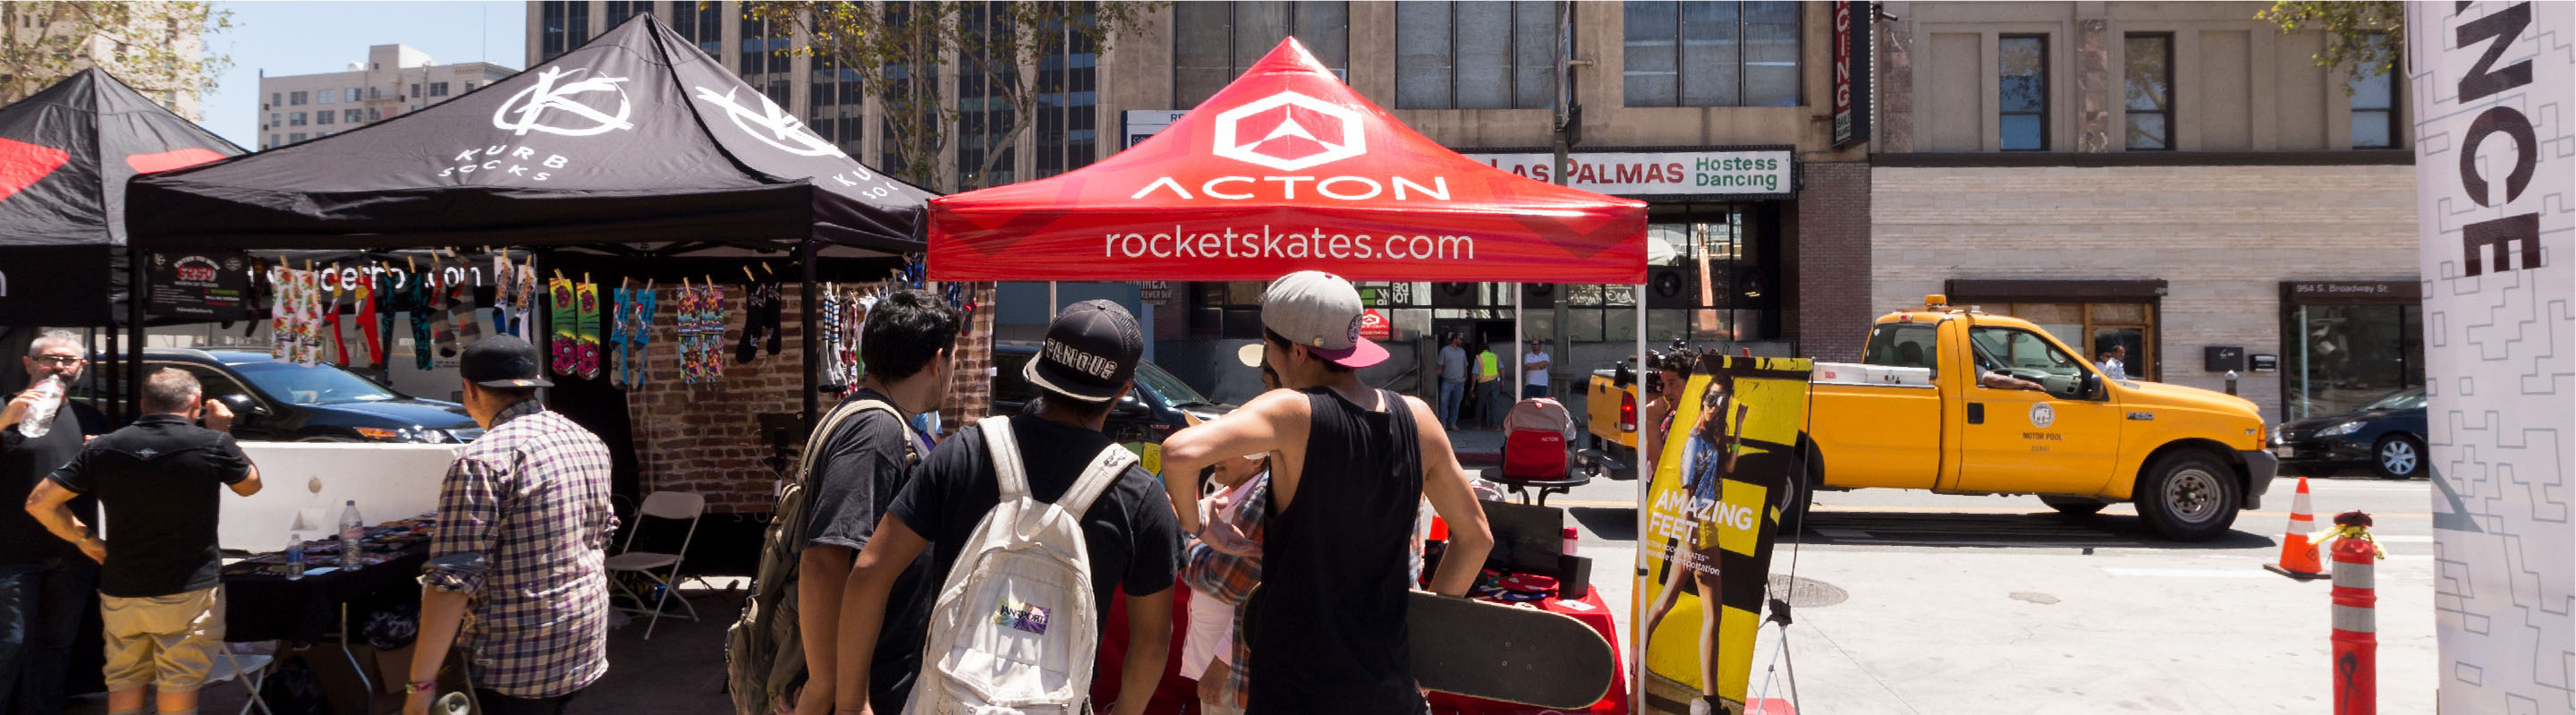 acton rocket skates bronze package with custom printed canopy tent top